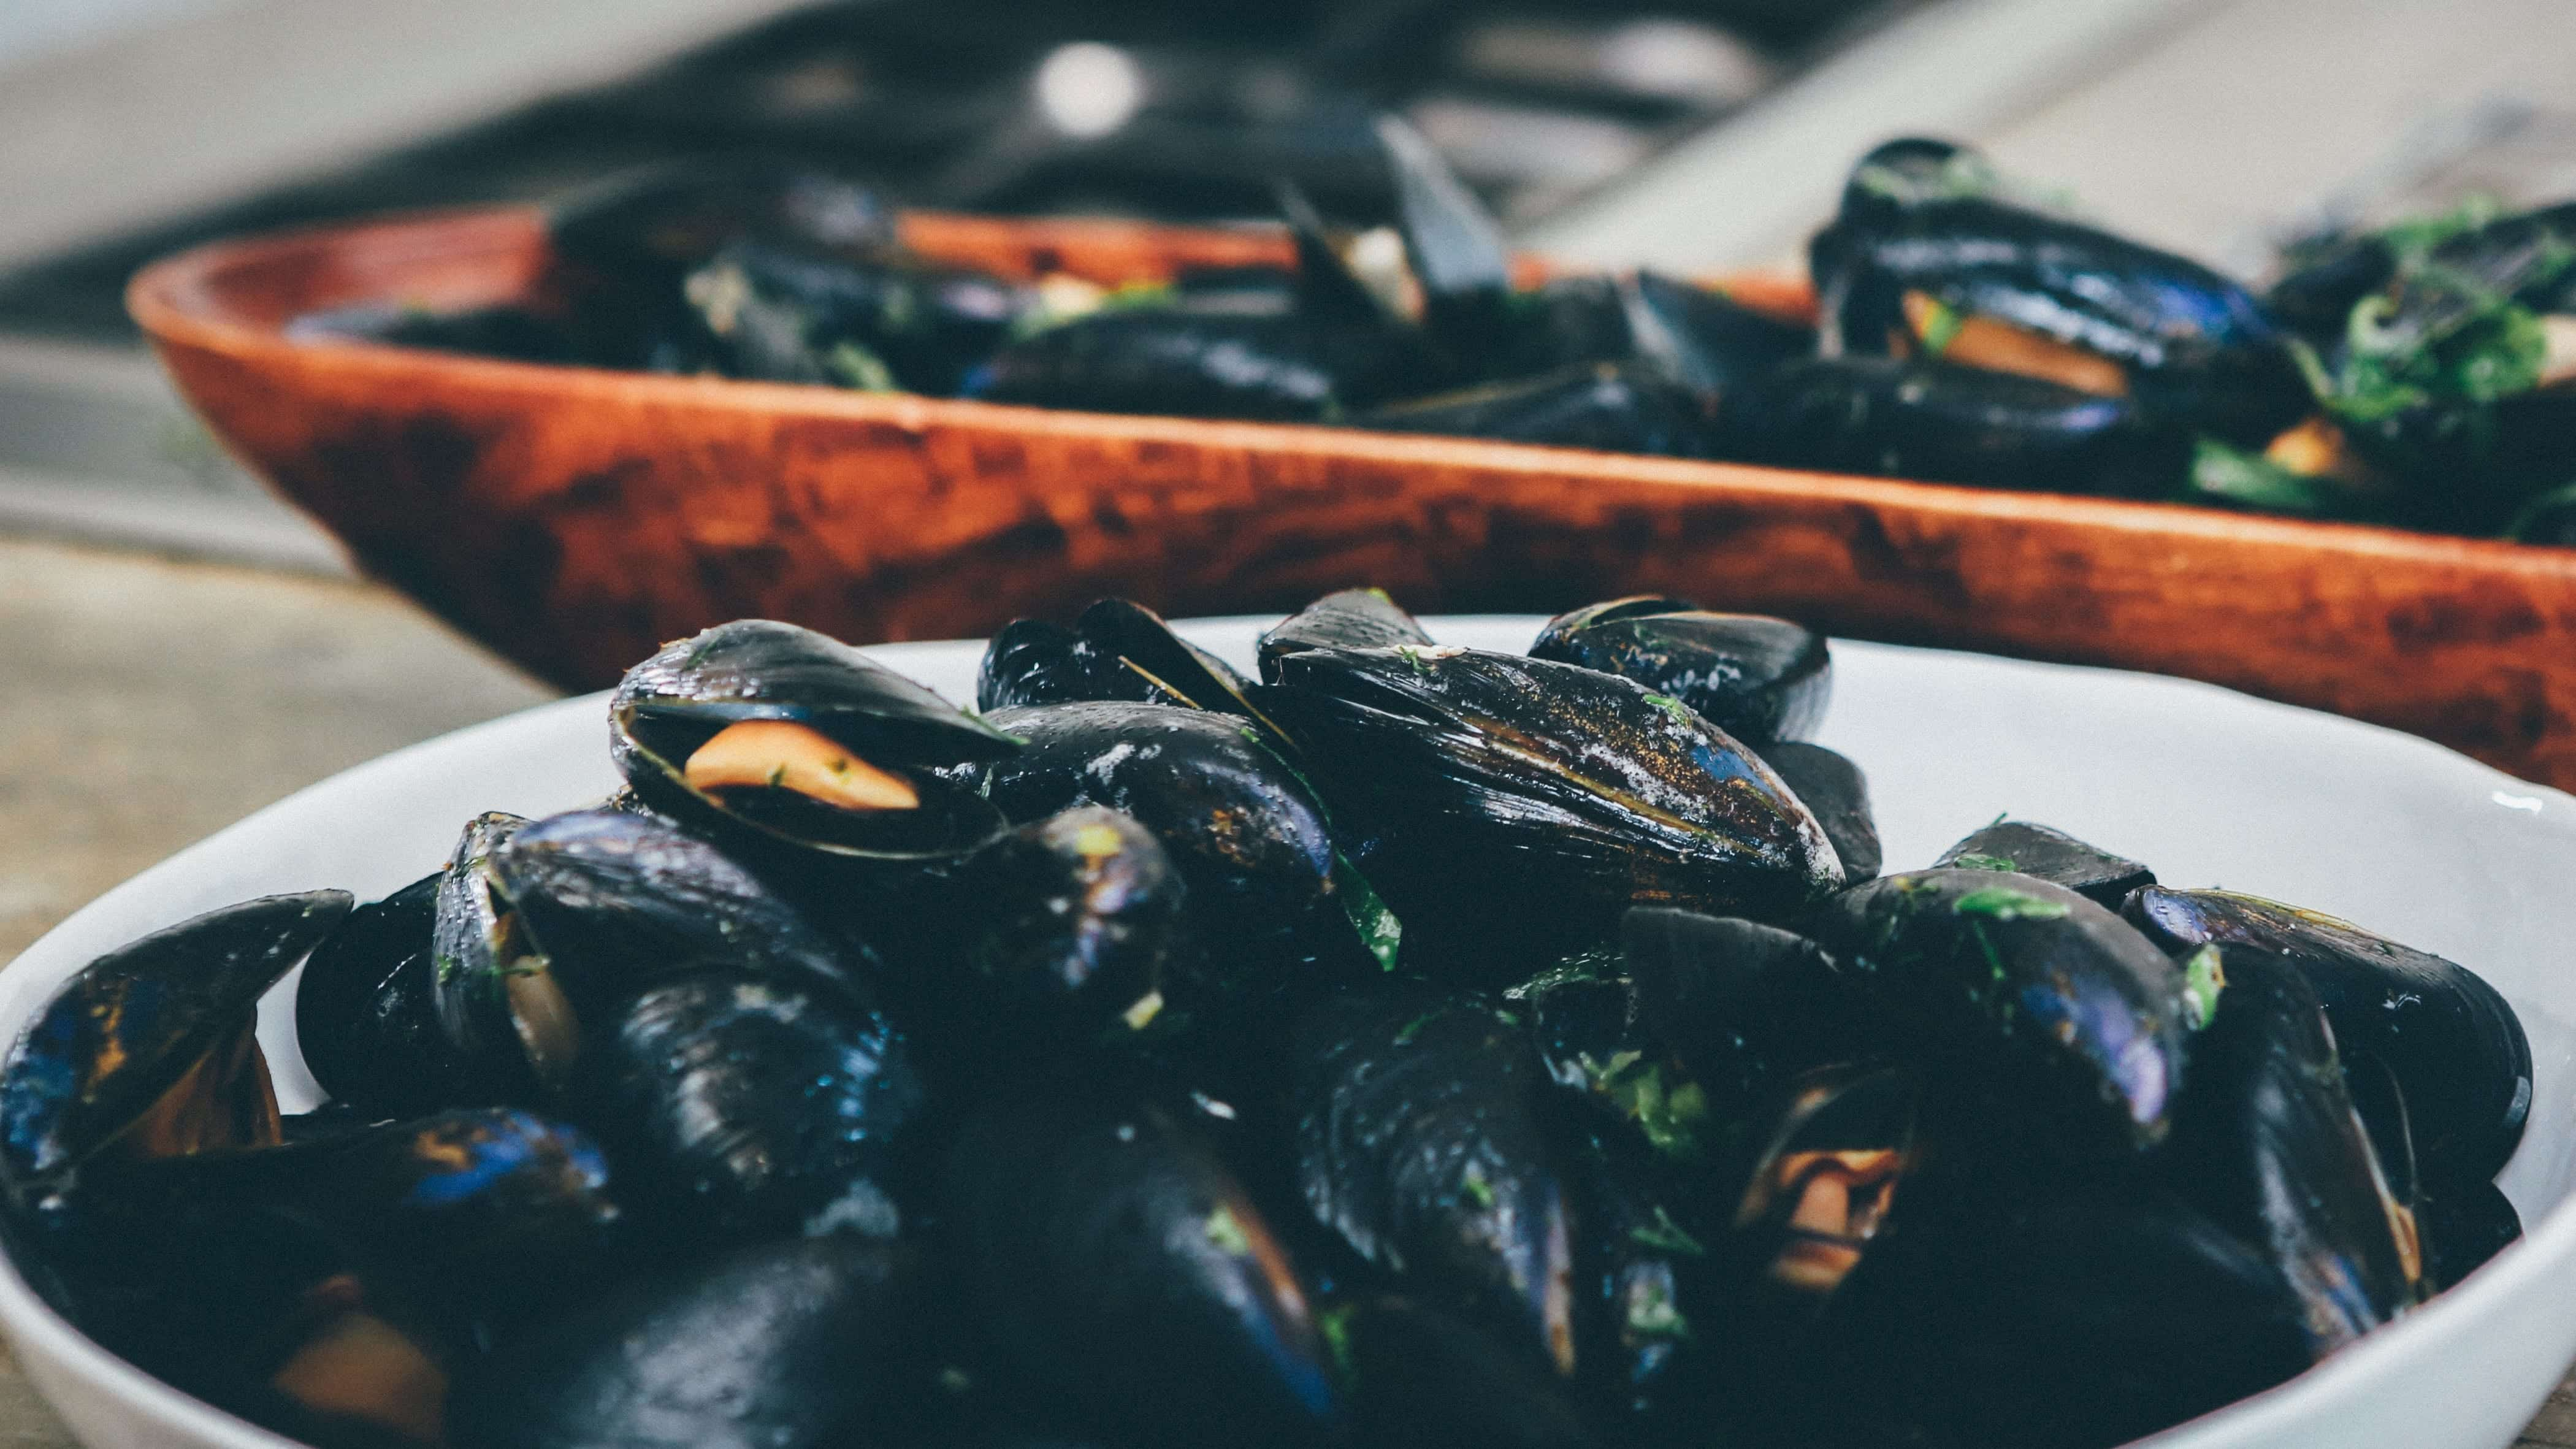 Seafood Company Settles Sexual Harassment Claims